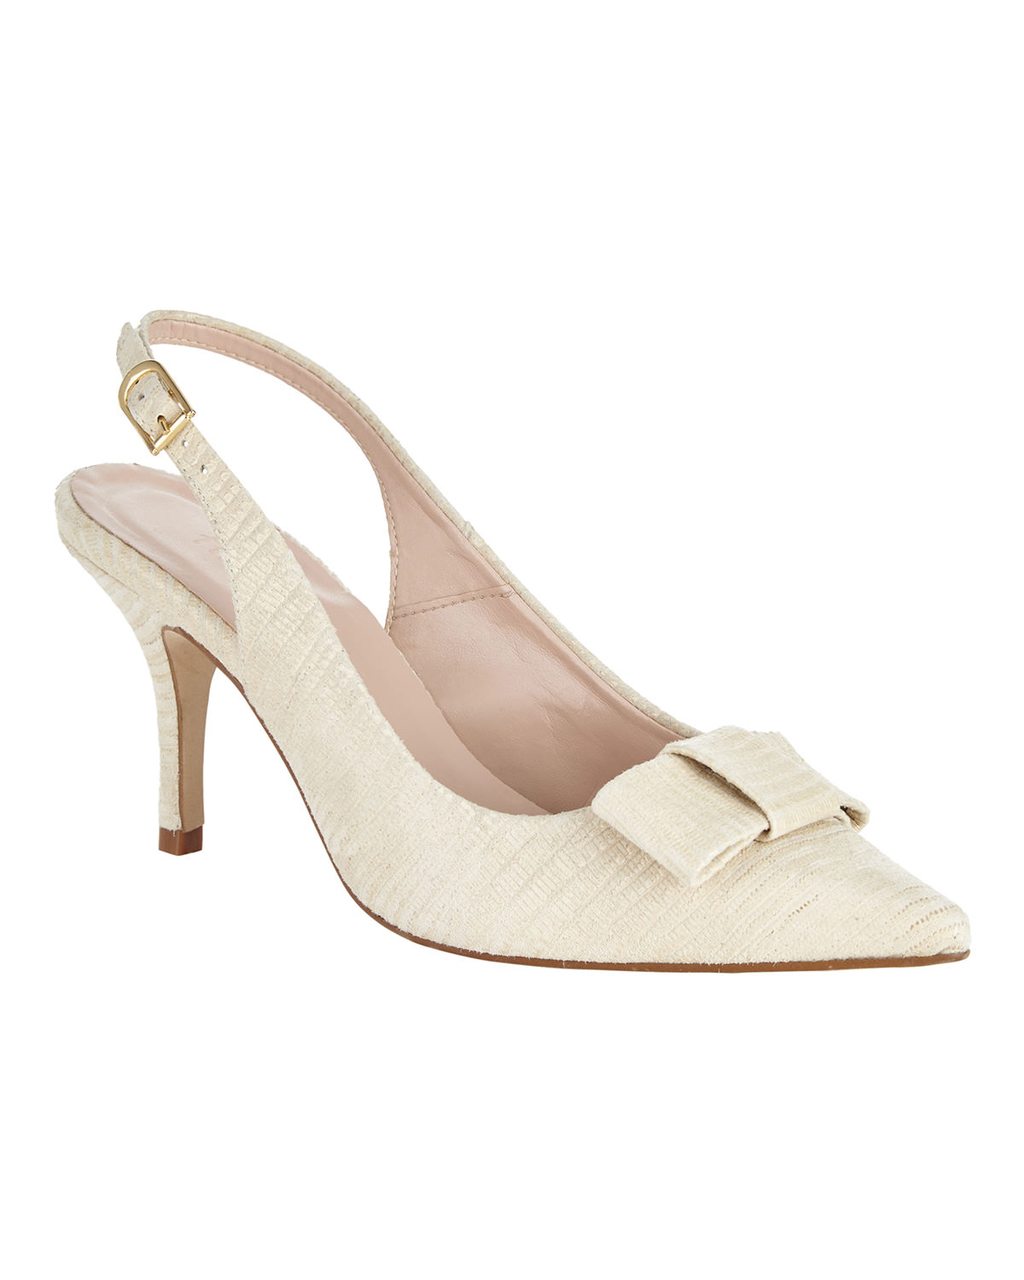 Sammy Leather Bow Sling Back - predominant colour: ivory/cream; occasions: occasion; material: leather; heel height: mid; heel: kitten; toe: pointed toe; style: slingbacks; finish: plain; pattern: plain; embellishment: bow; season: s/s 2016; wardrobe: event